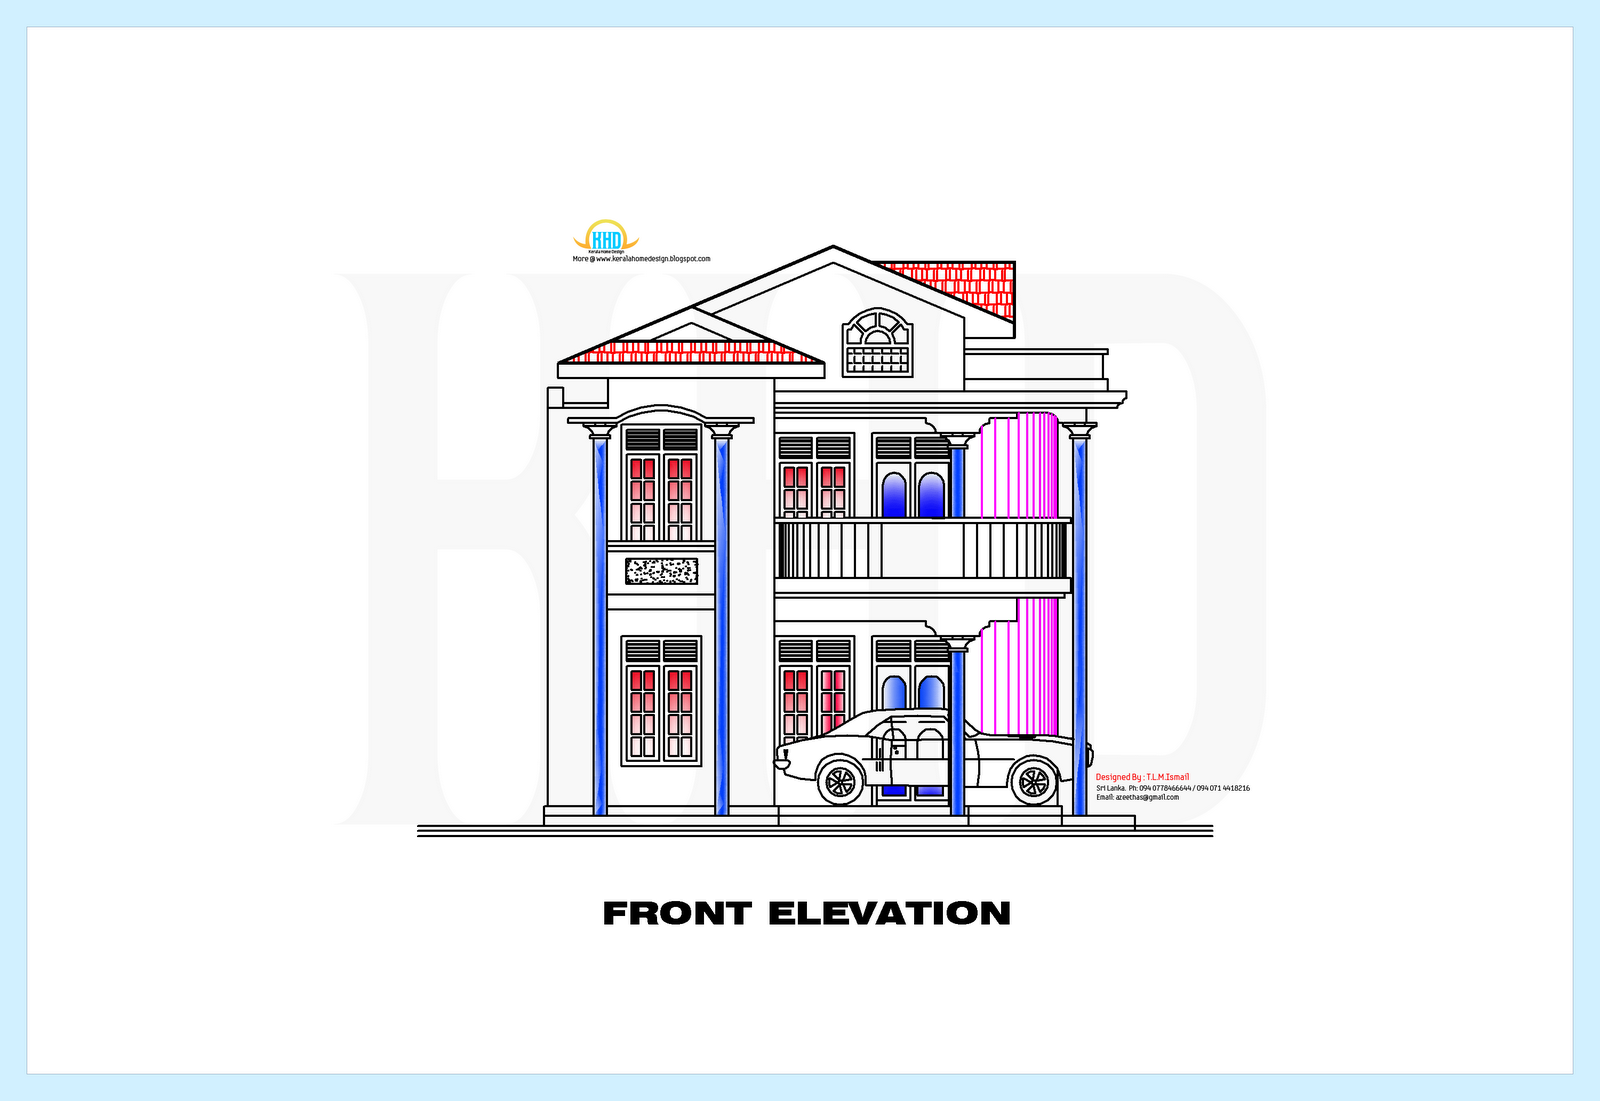 front house elevation design drawing stairs pinned by www modlar front house elevation design drawing stairs pinned by www modlar com